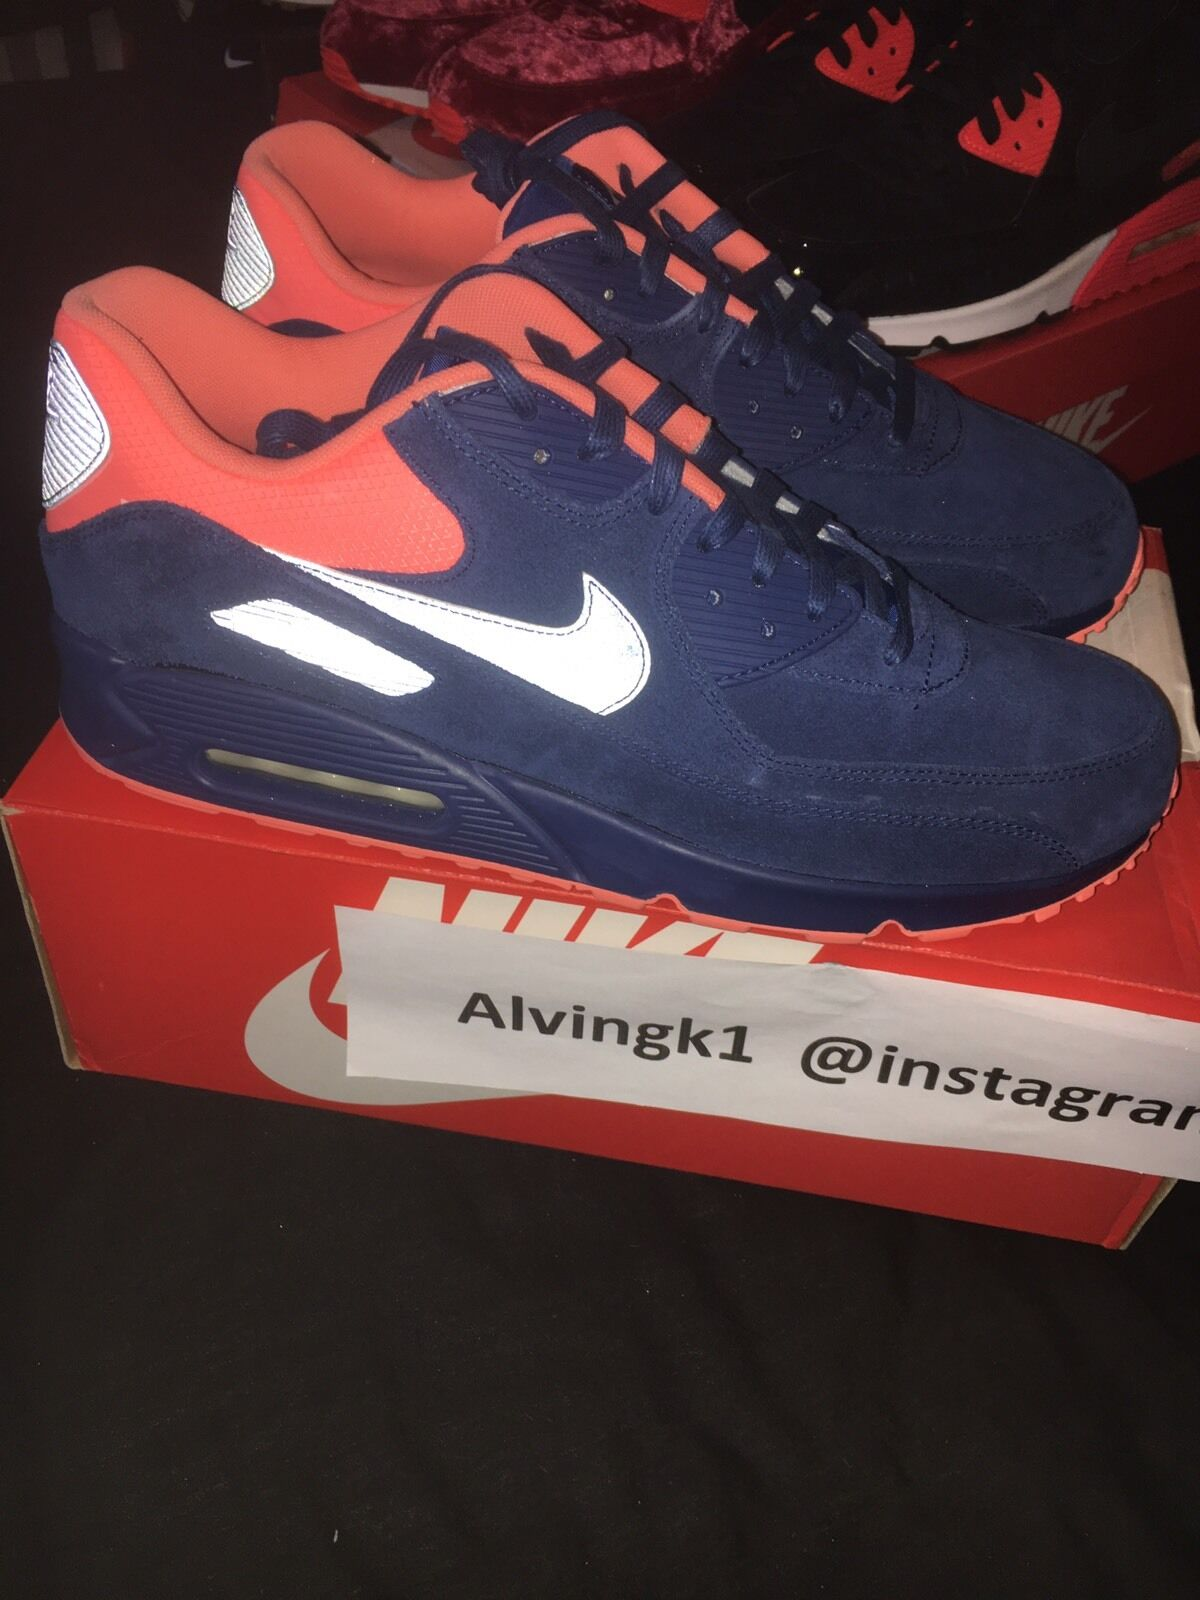 Nike Air Max 12uk 90 Premium DS NEUFS Taille 12uk Max 13us e30163